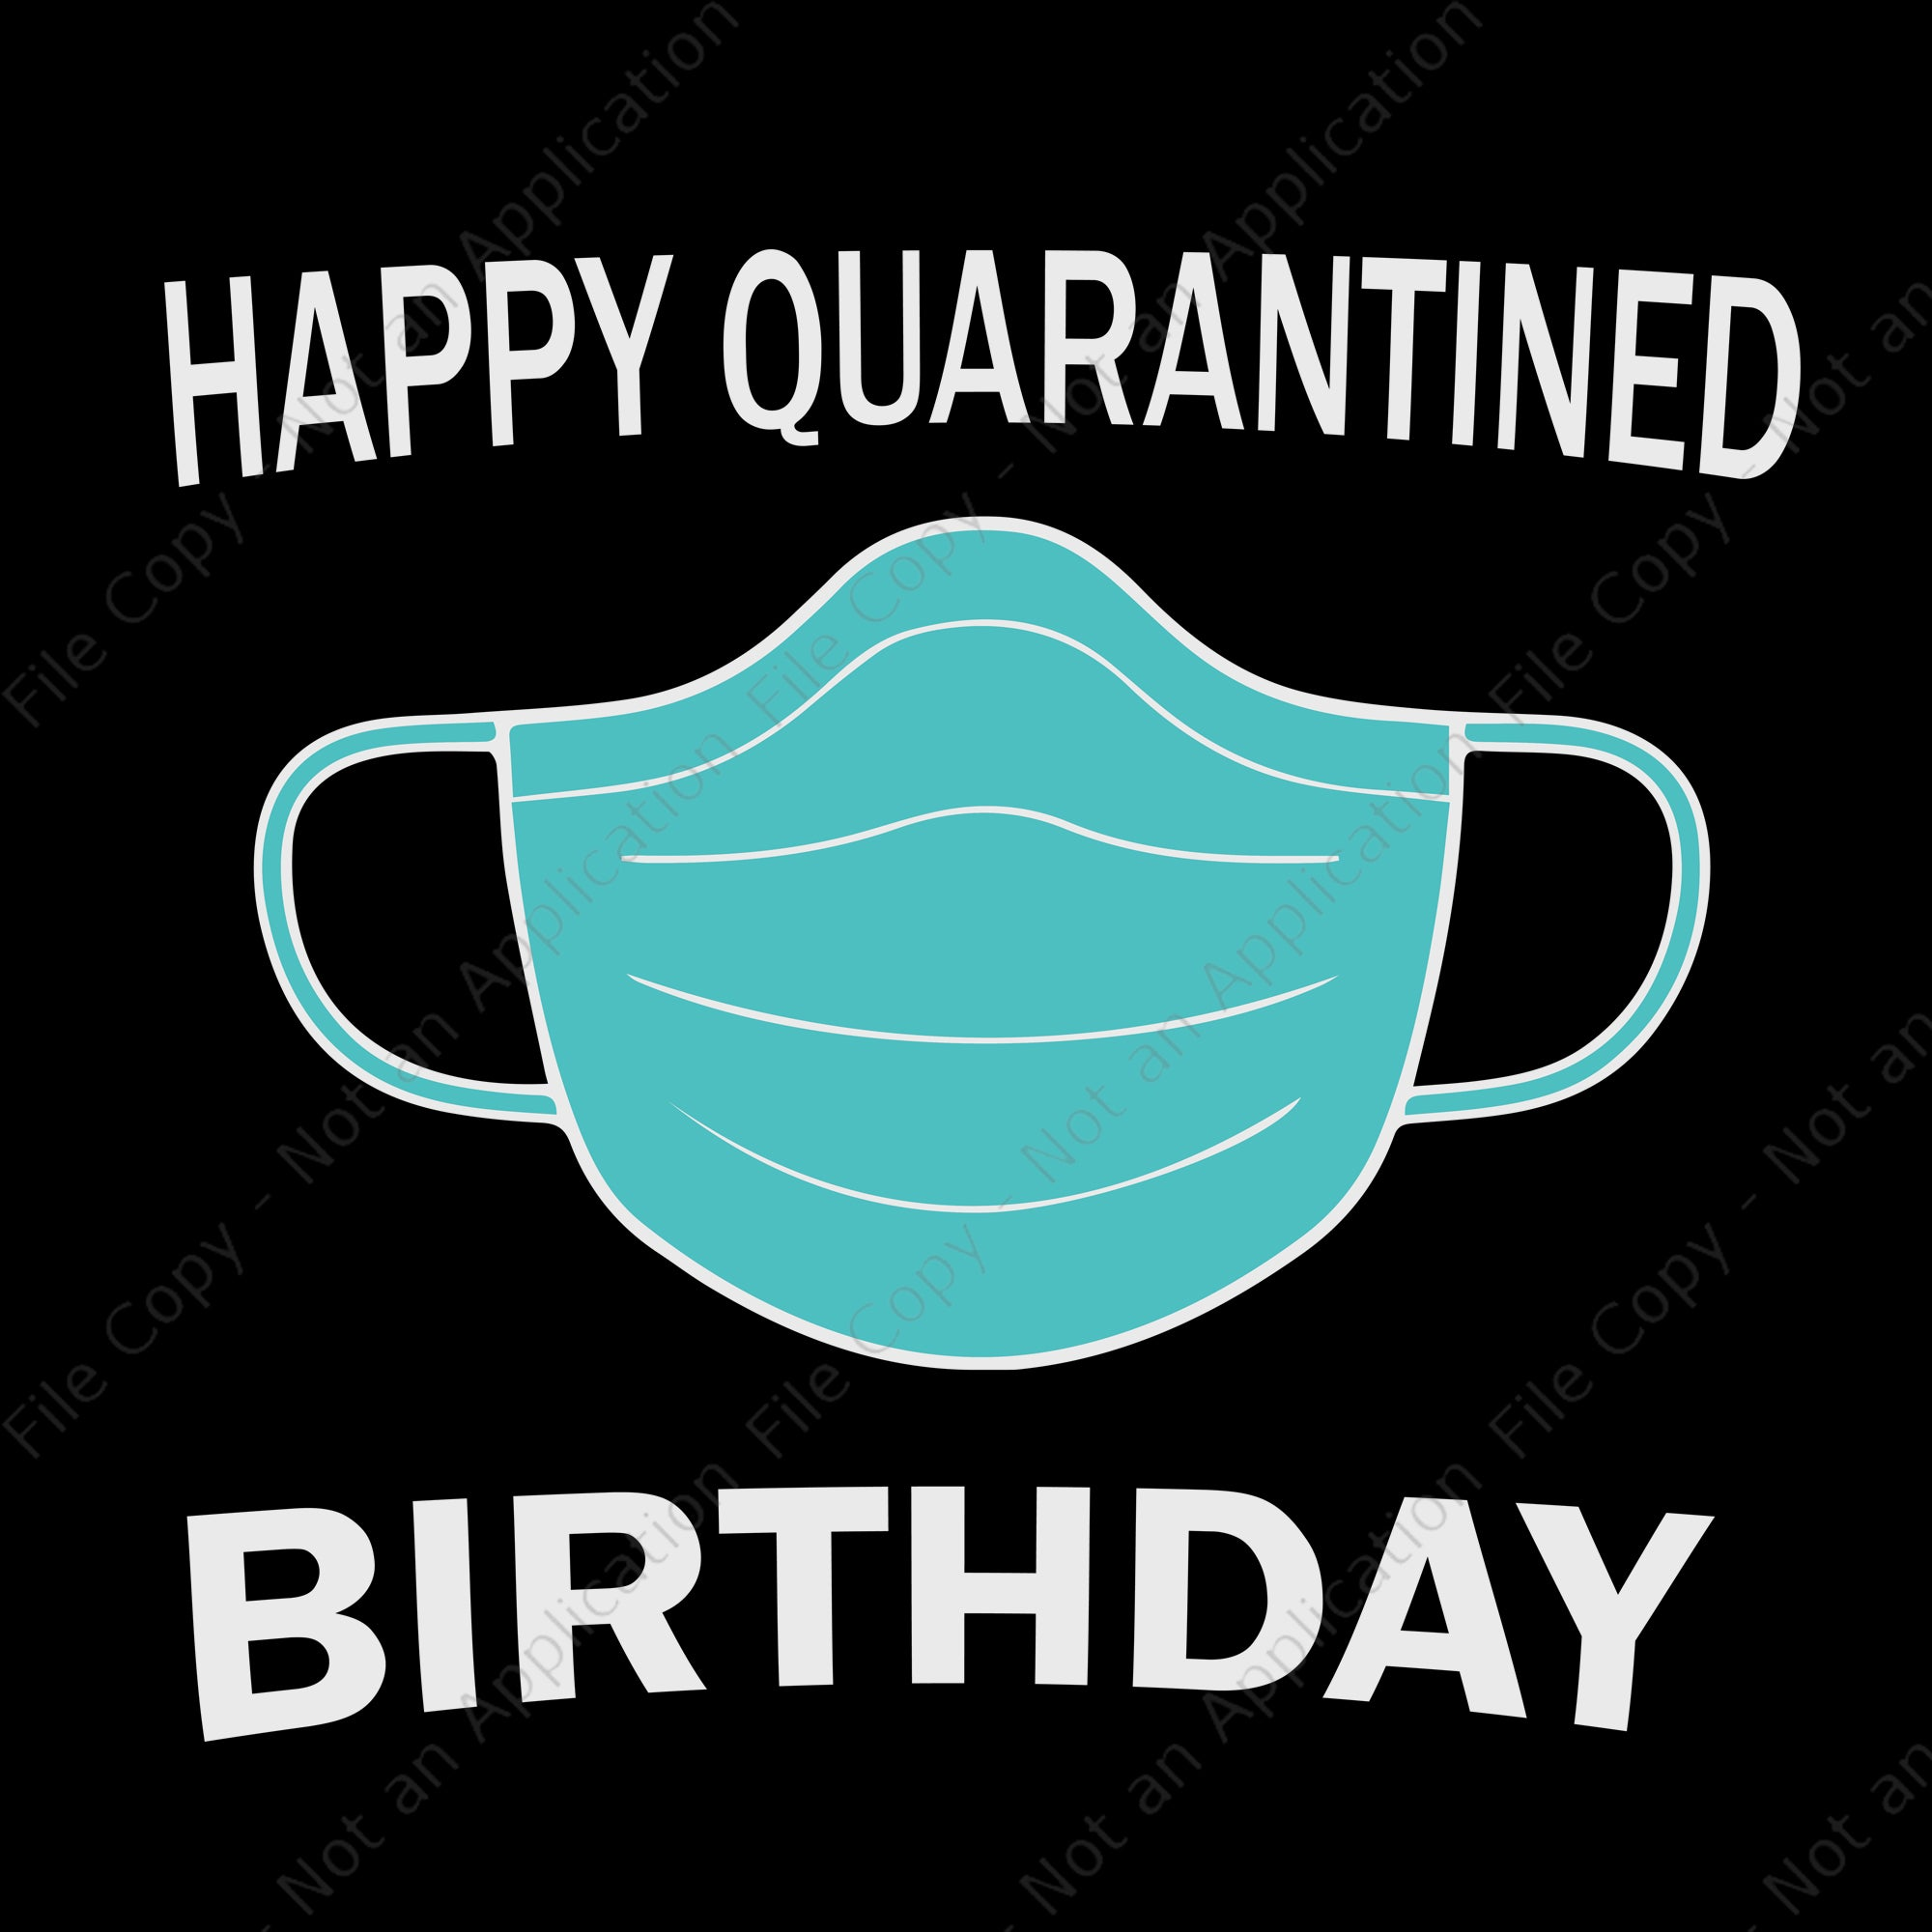 Happy quarantined birthday svg, happy quarantined birthday, happy quarantined birthday medical mask virus  png, eps, dxf, ai file